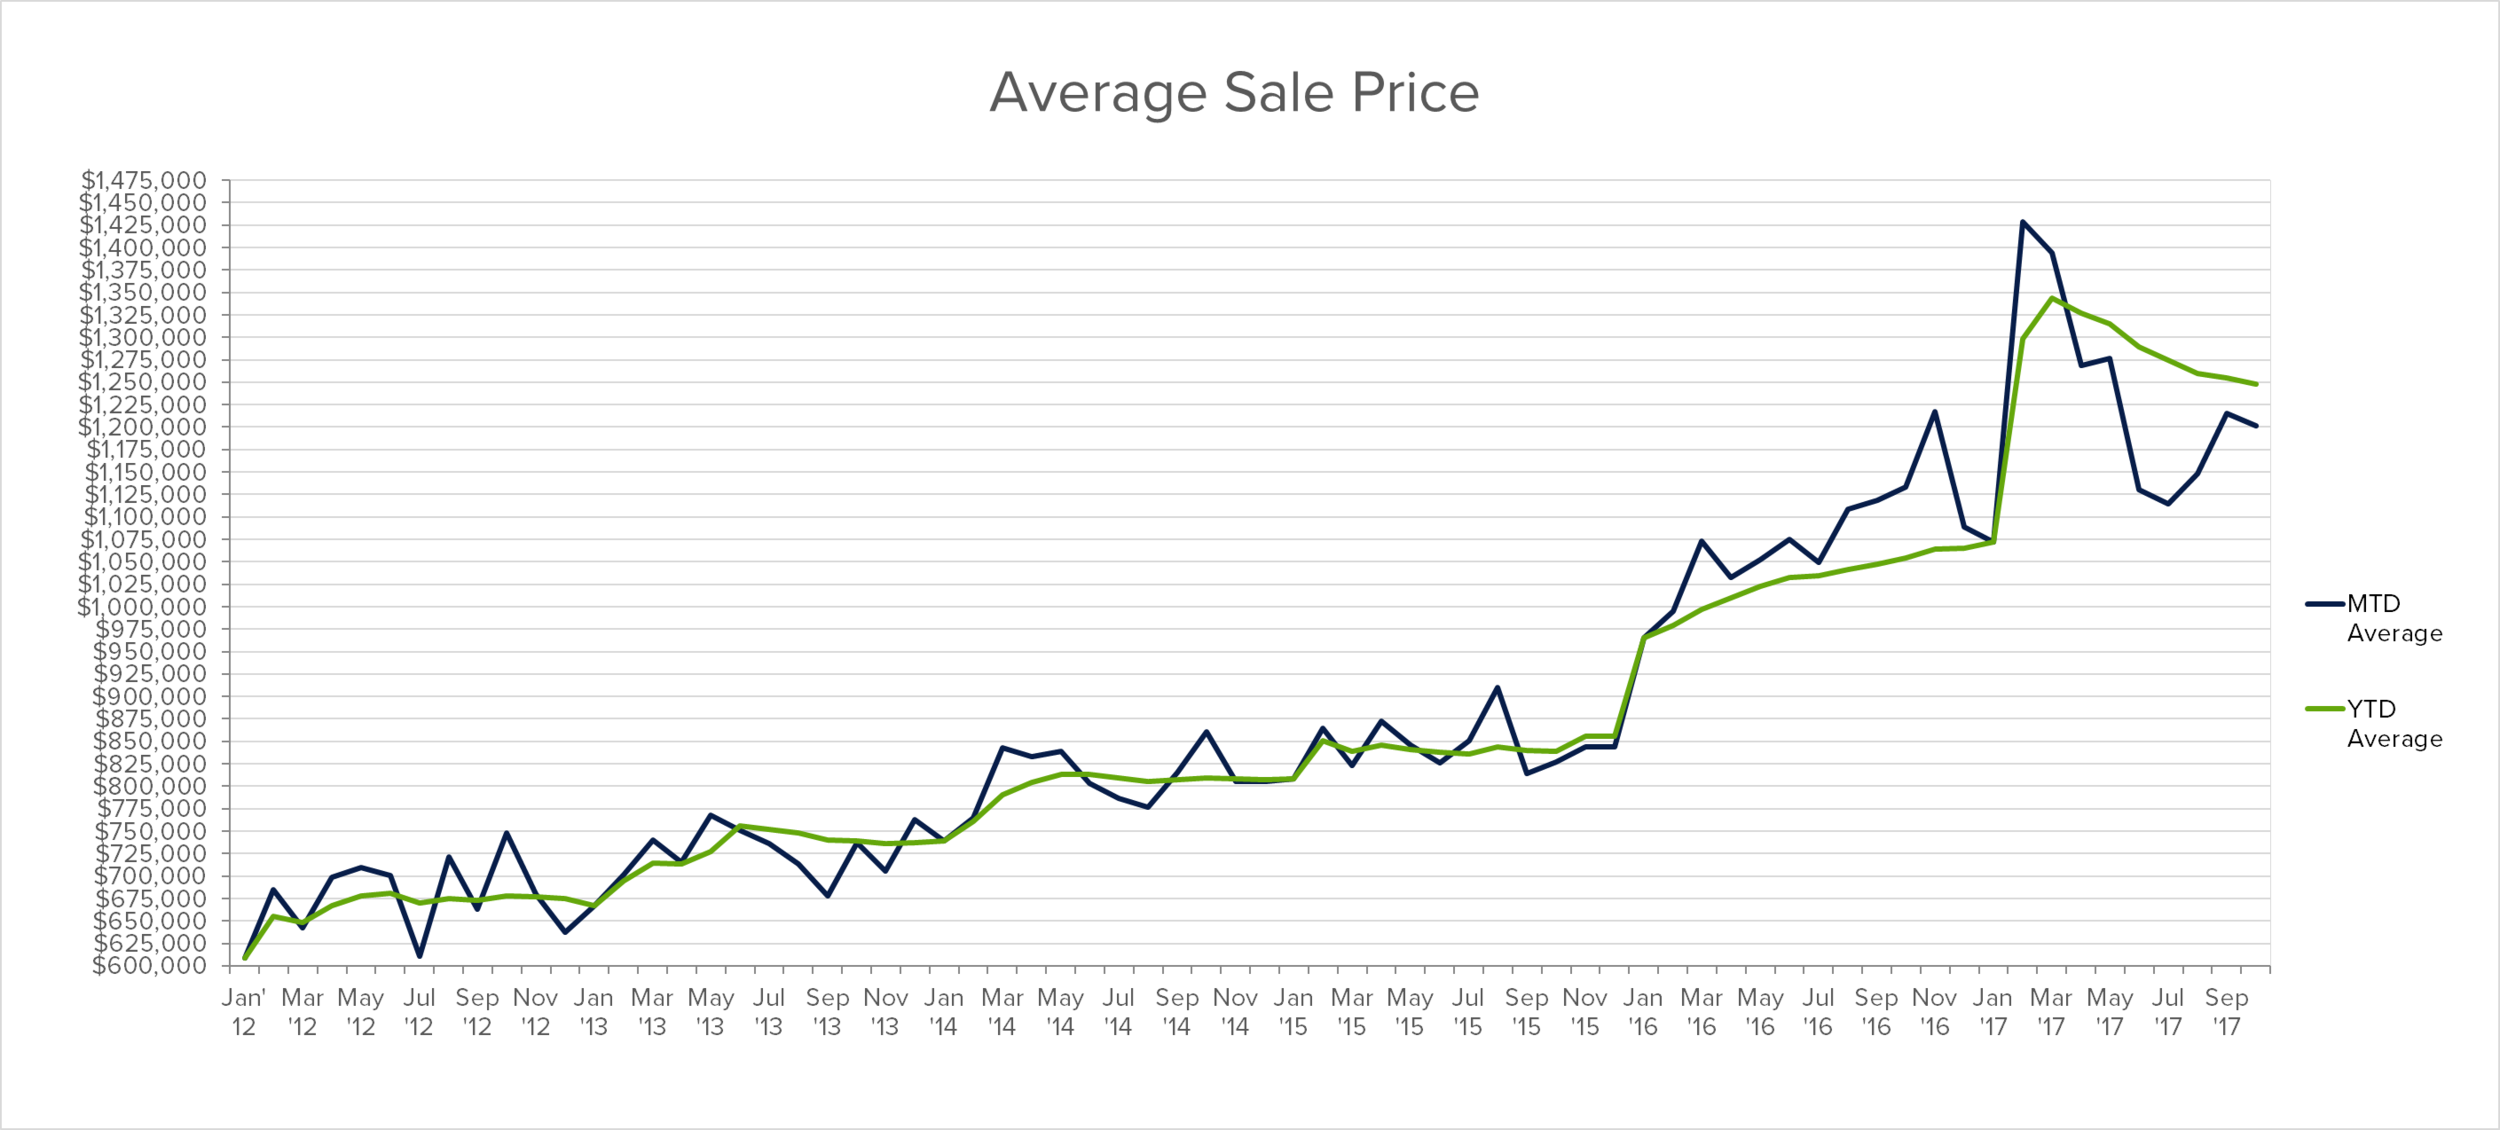 oakville median sales prices 2012-2017